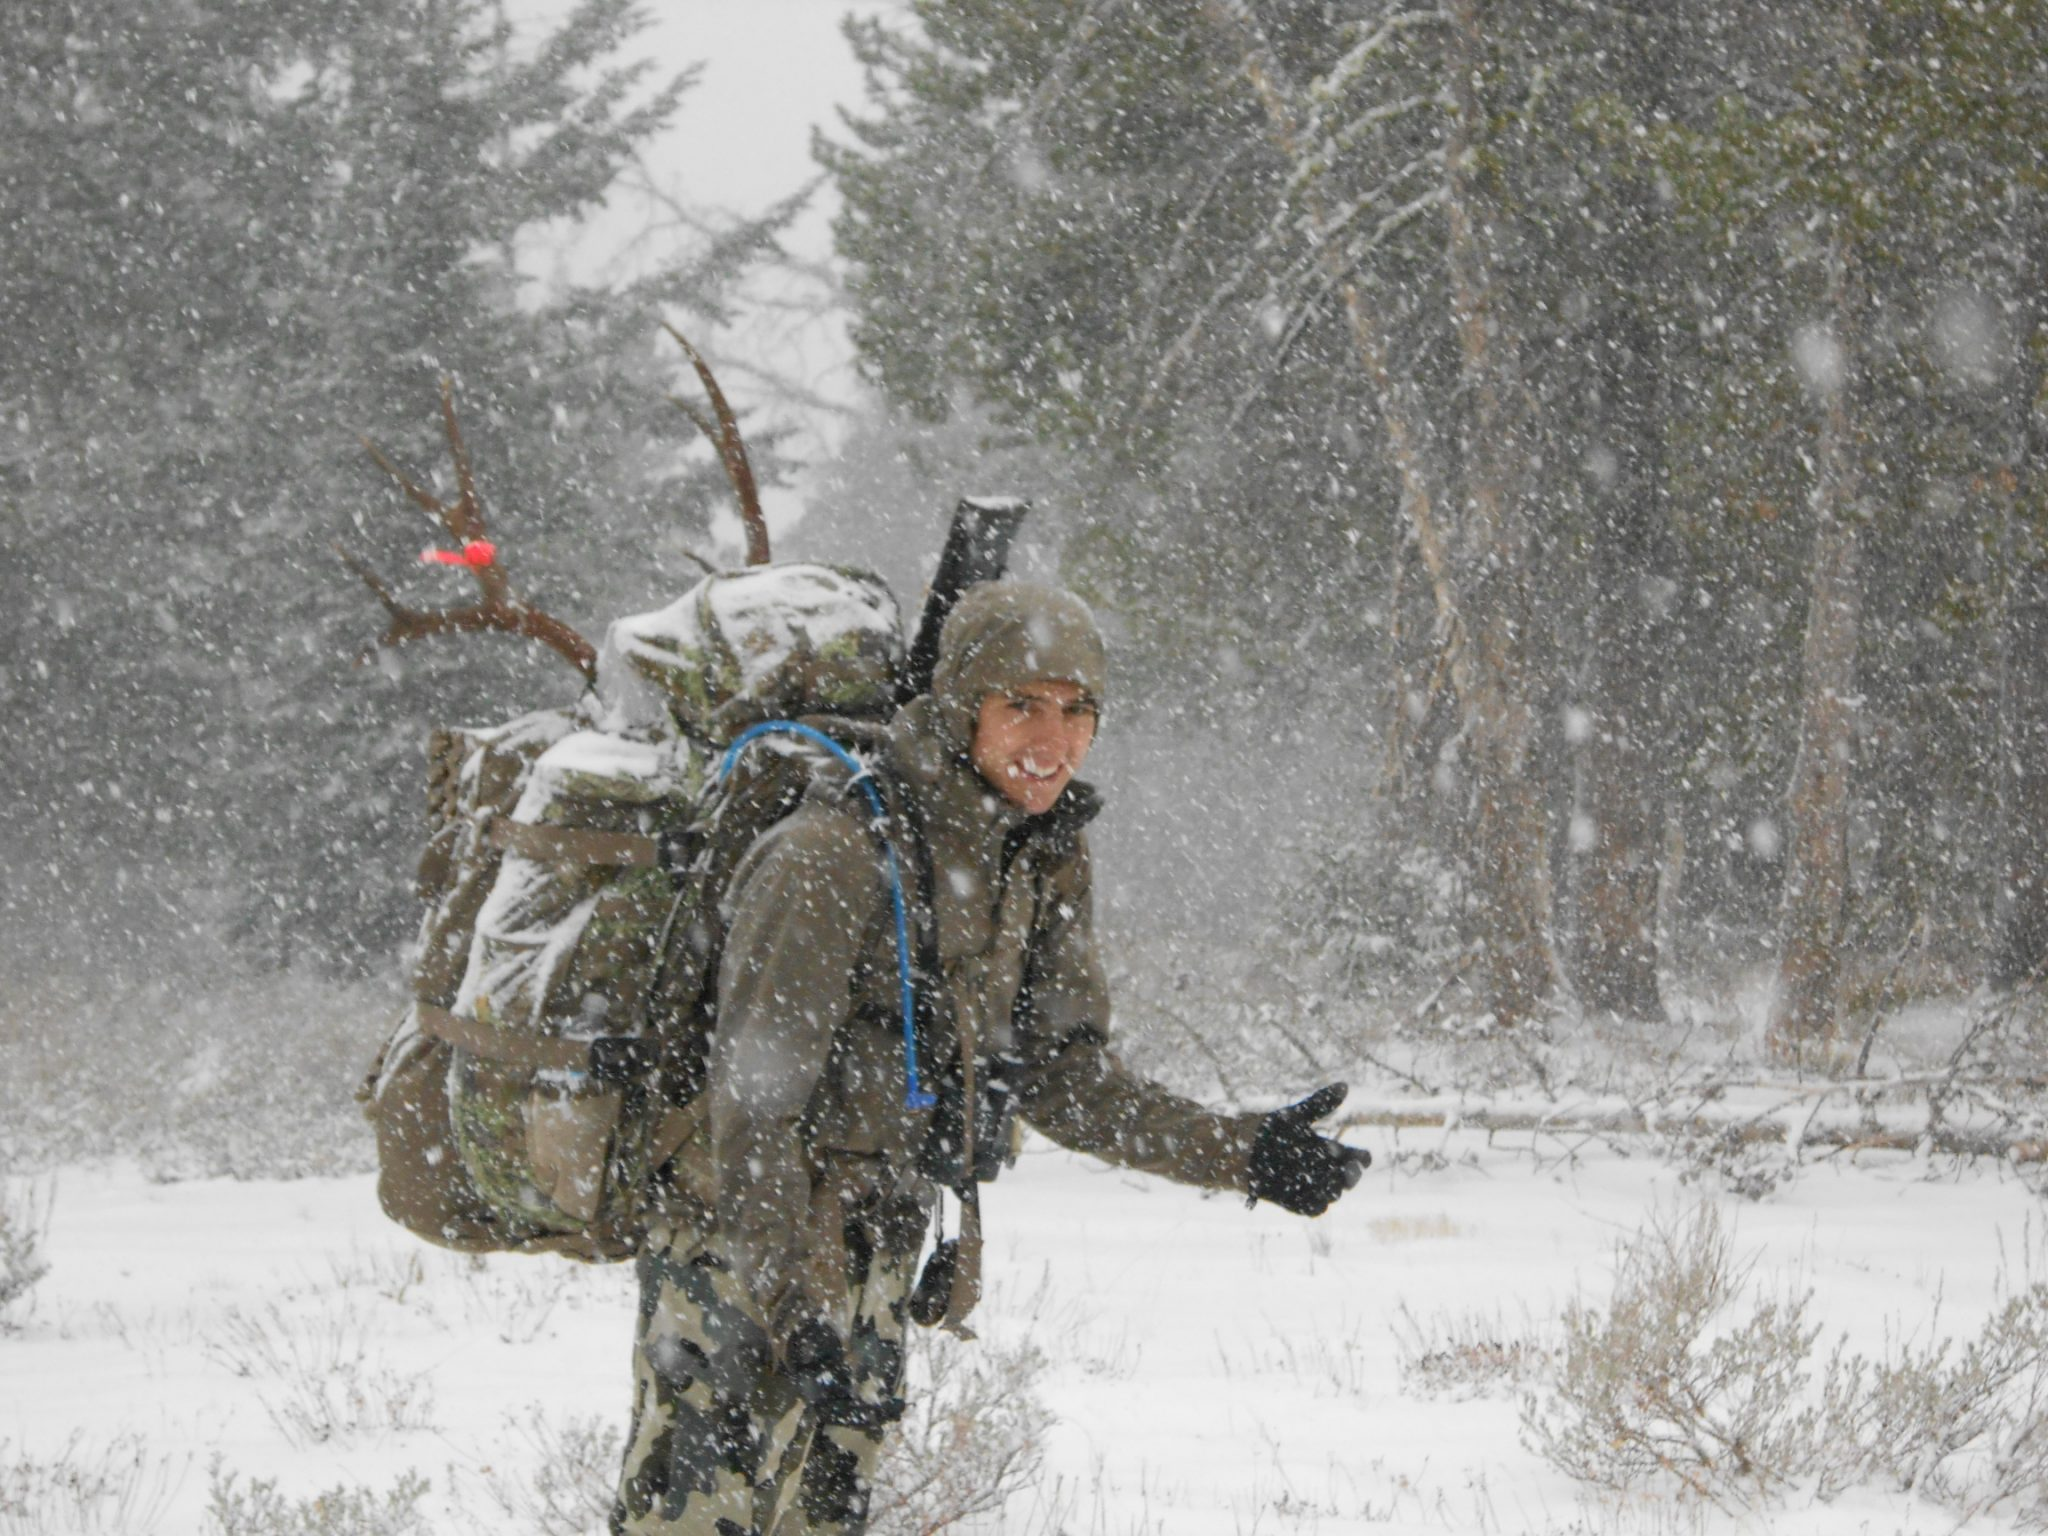 A fall snowstorm made this backpack trip a true challenge!